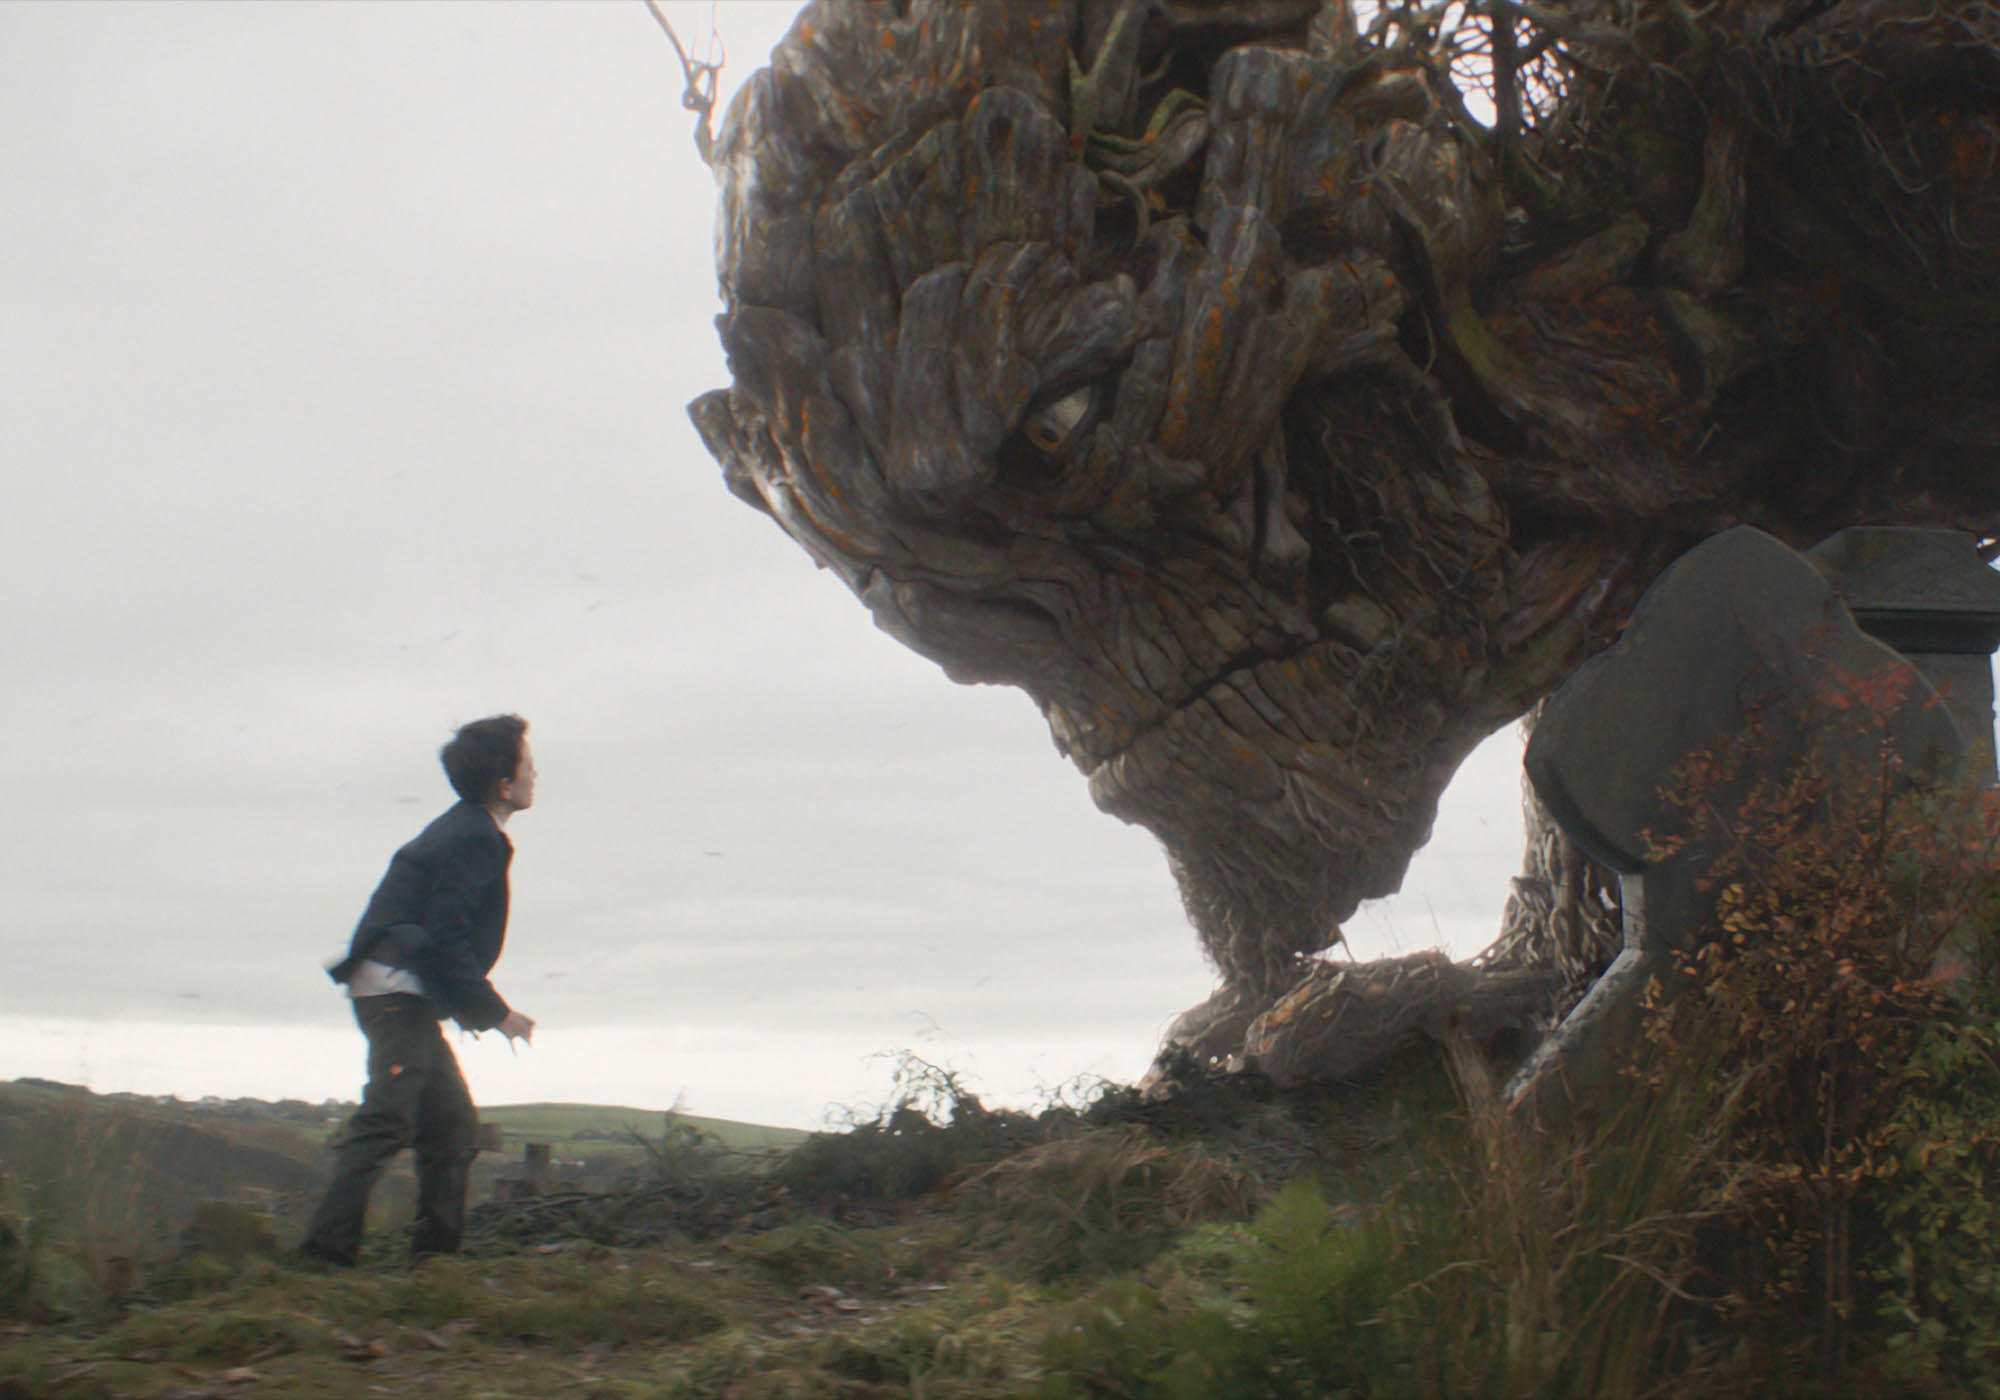 8 Great Trees That Come to Life in the Movies | Fandango